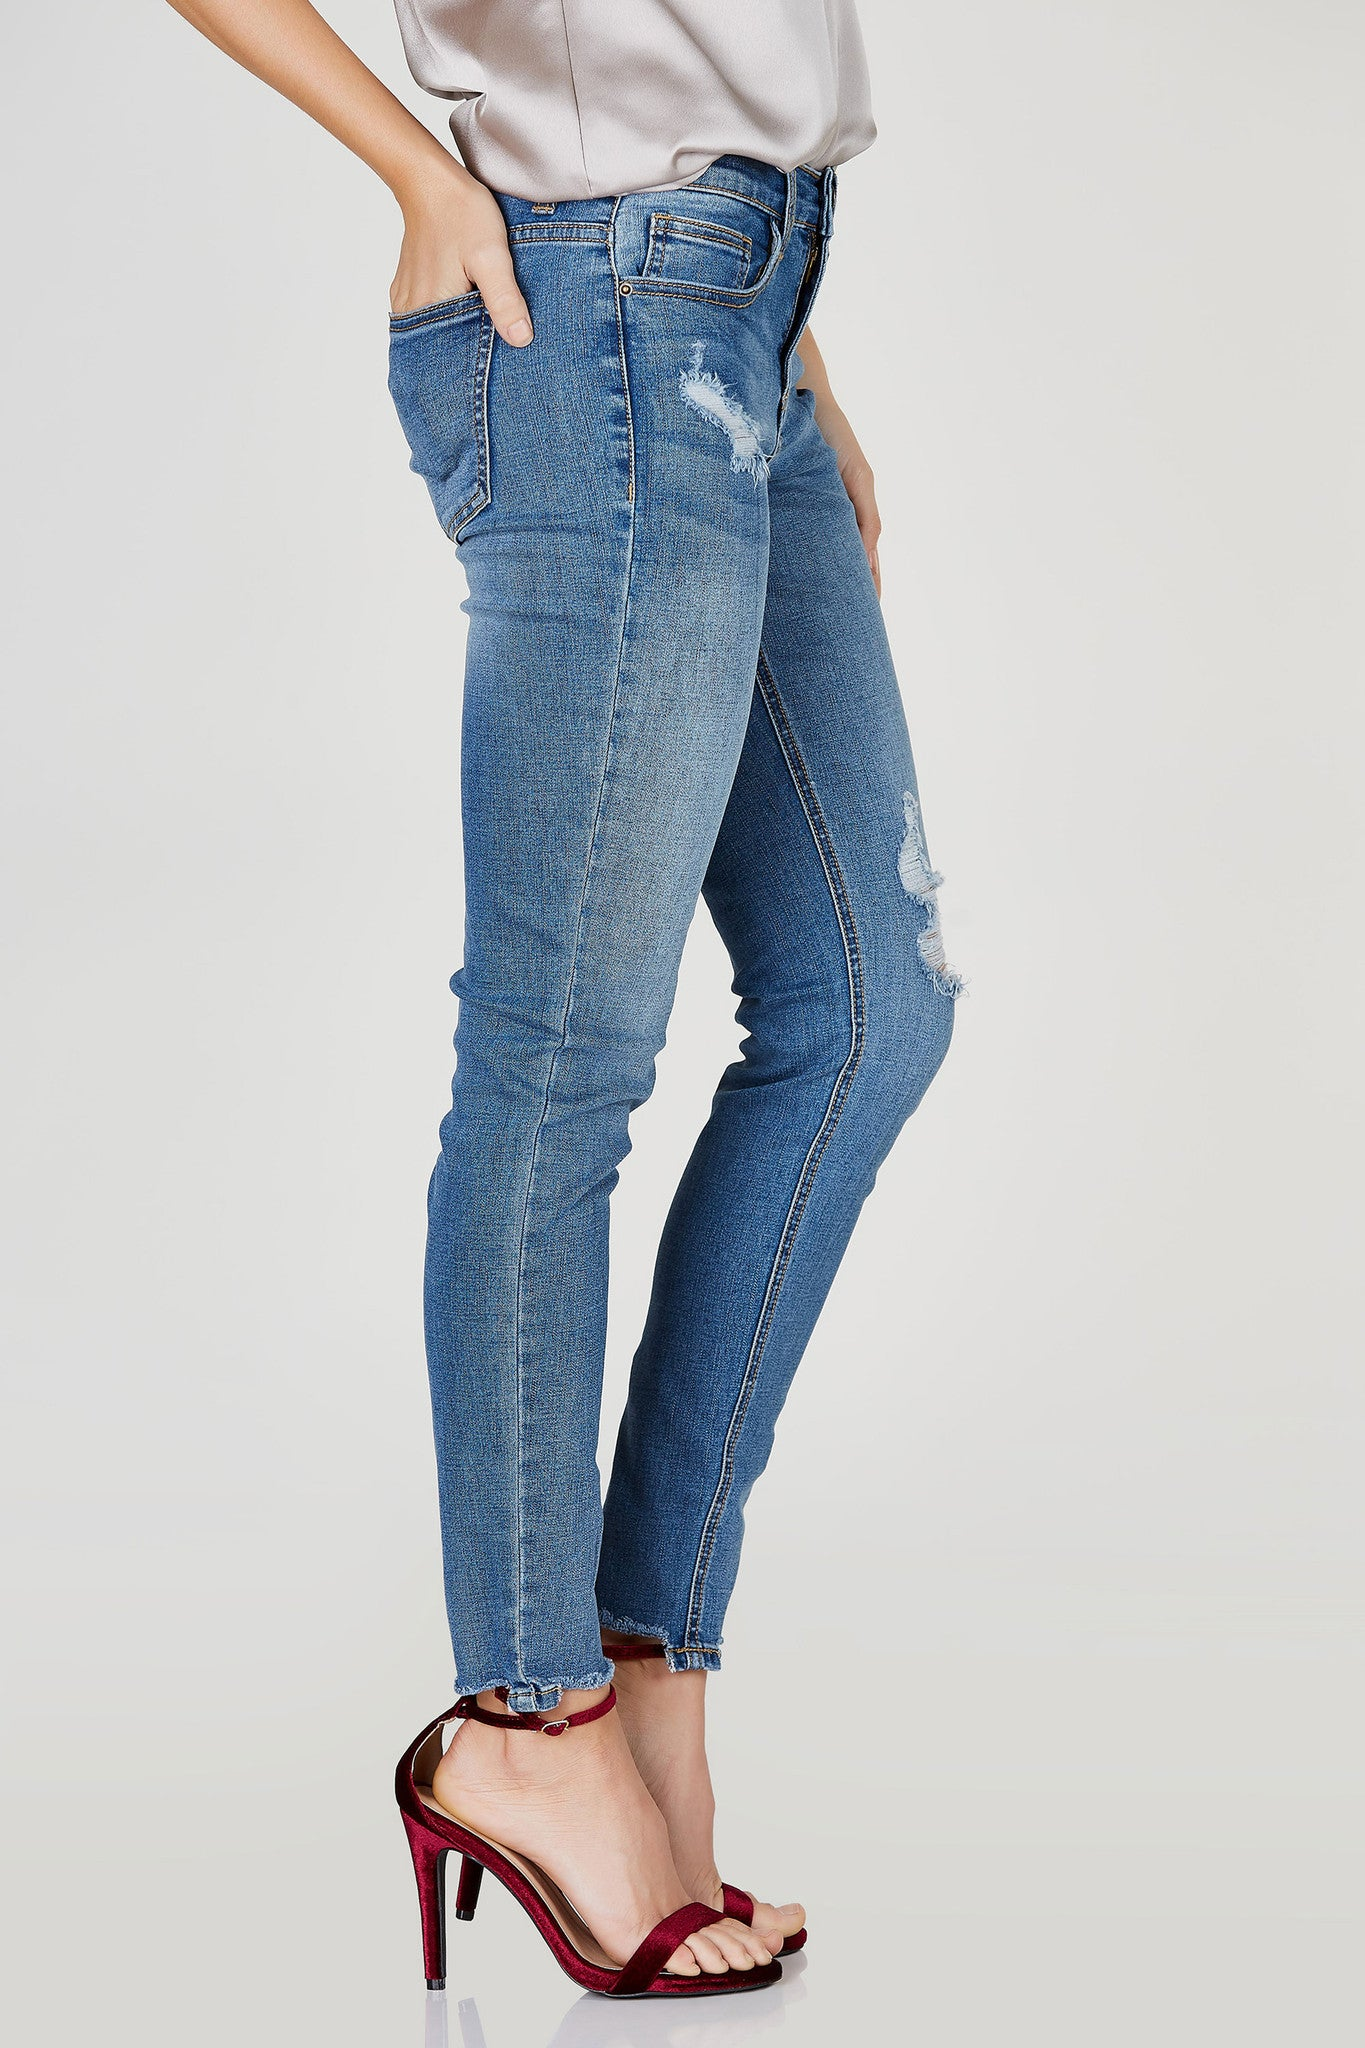 A staple piece for everyone's wardrobe. This dope pair of skinny jeans features awesome distressing for a vintage-esque vibe with raw hem for a trendy 90's vibe. Style with a crop top and sneakers for a casual day time look.